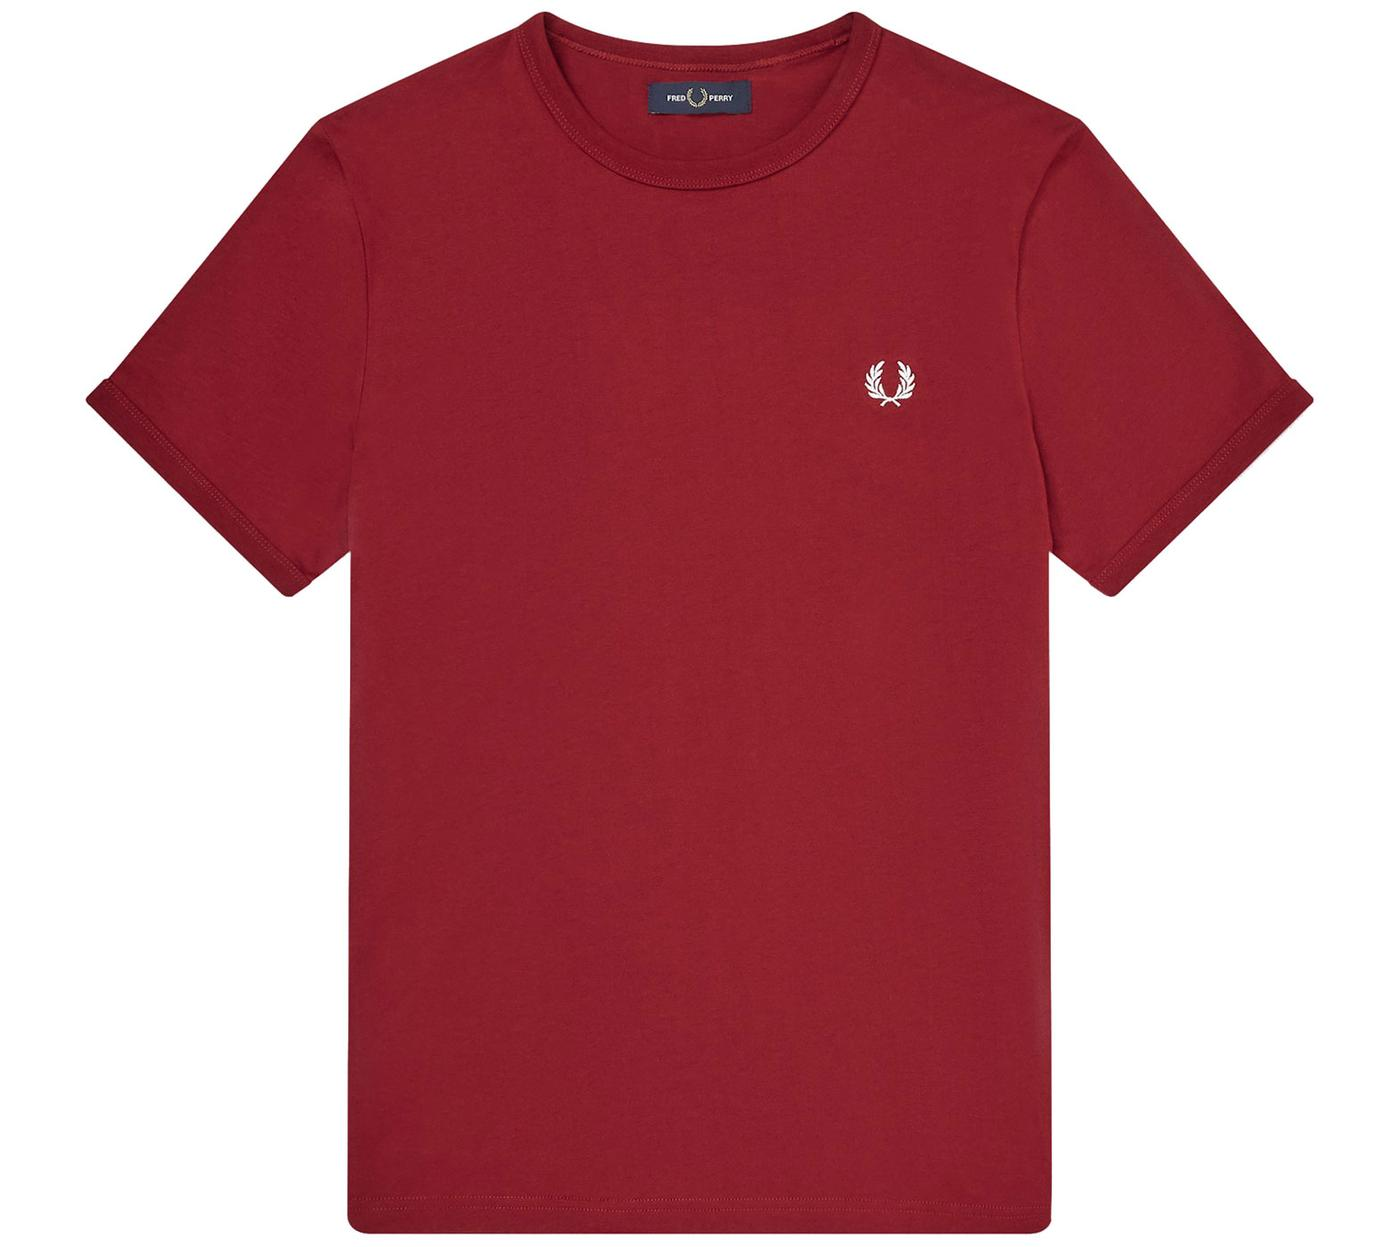 FRED PERRY Men's Retro Crew Neck Ringer T-Shirt